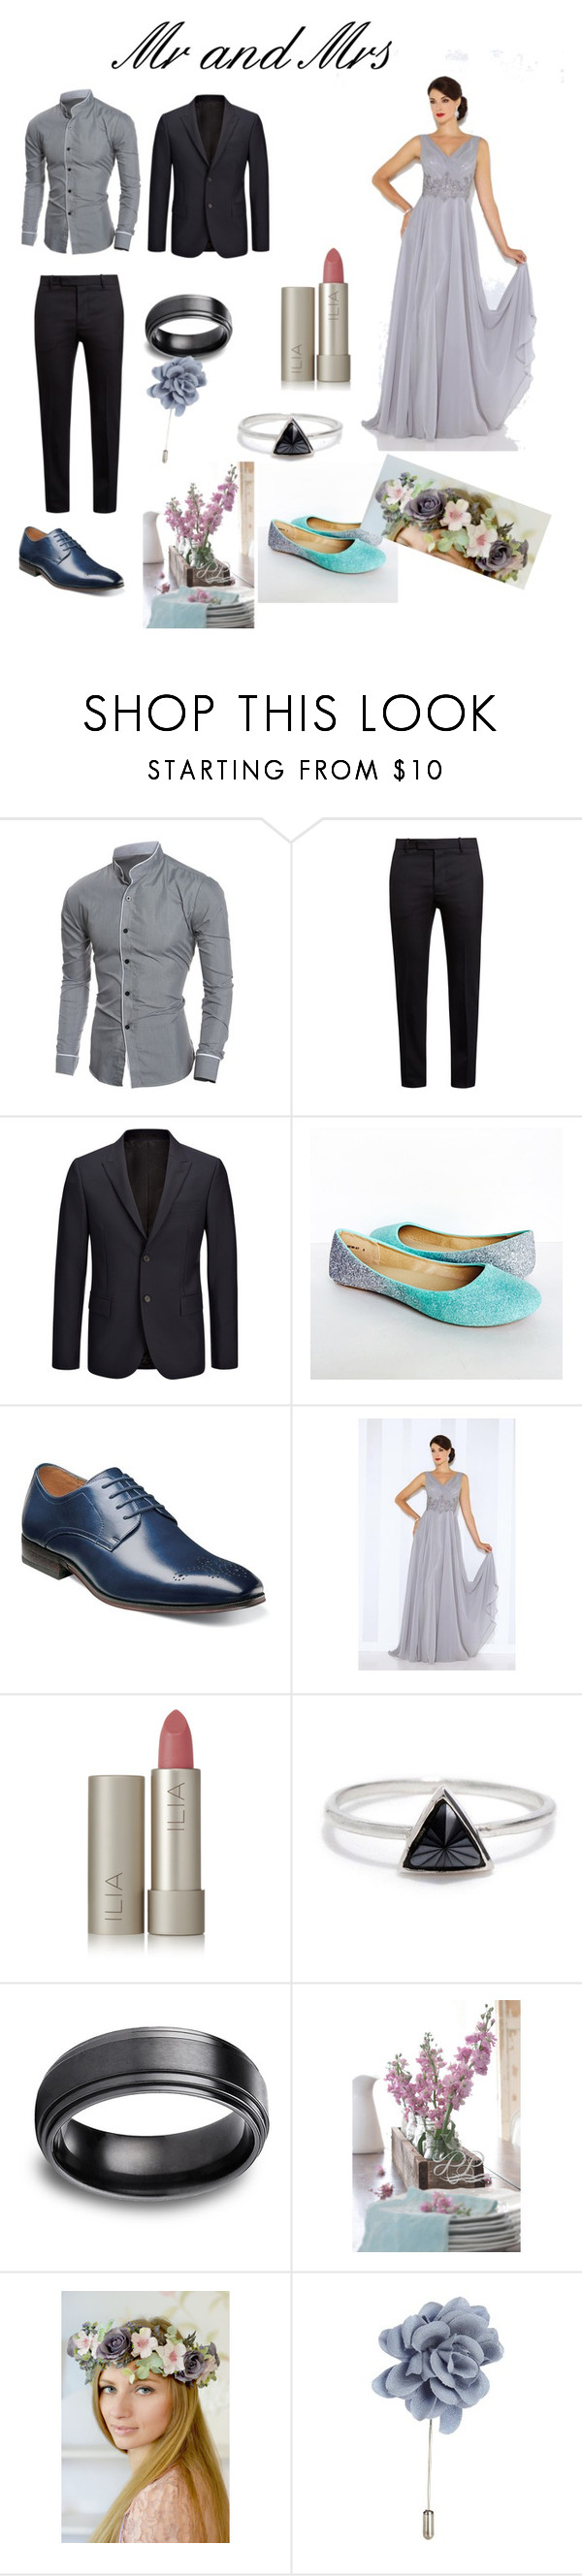 """grey blue pink wedding"" by heeeyyaaa ❤ liked on Polyvore featuring Marni, Joseph, Florsheim, Cameron Blake, Ilia, Bing Bang and Lanvin"